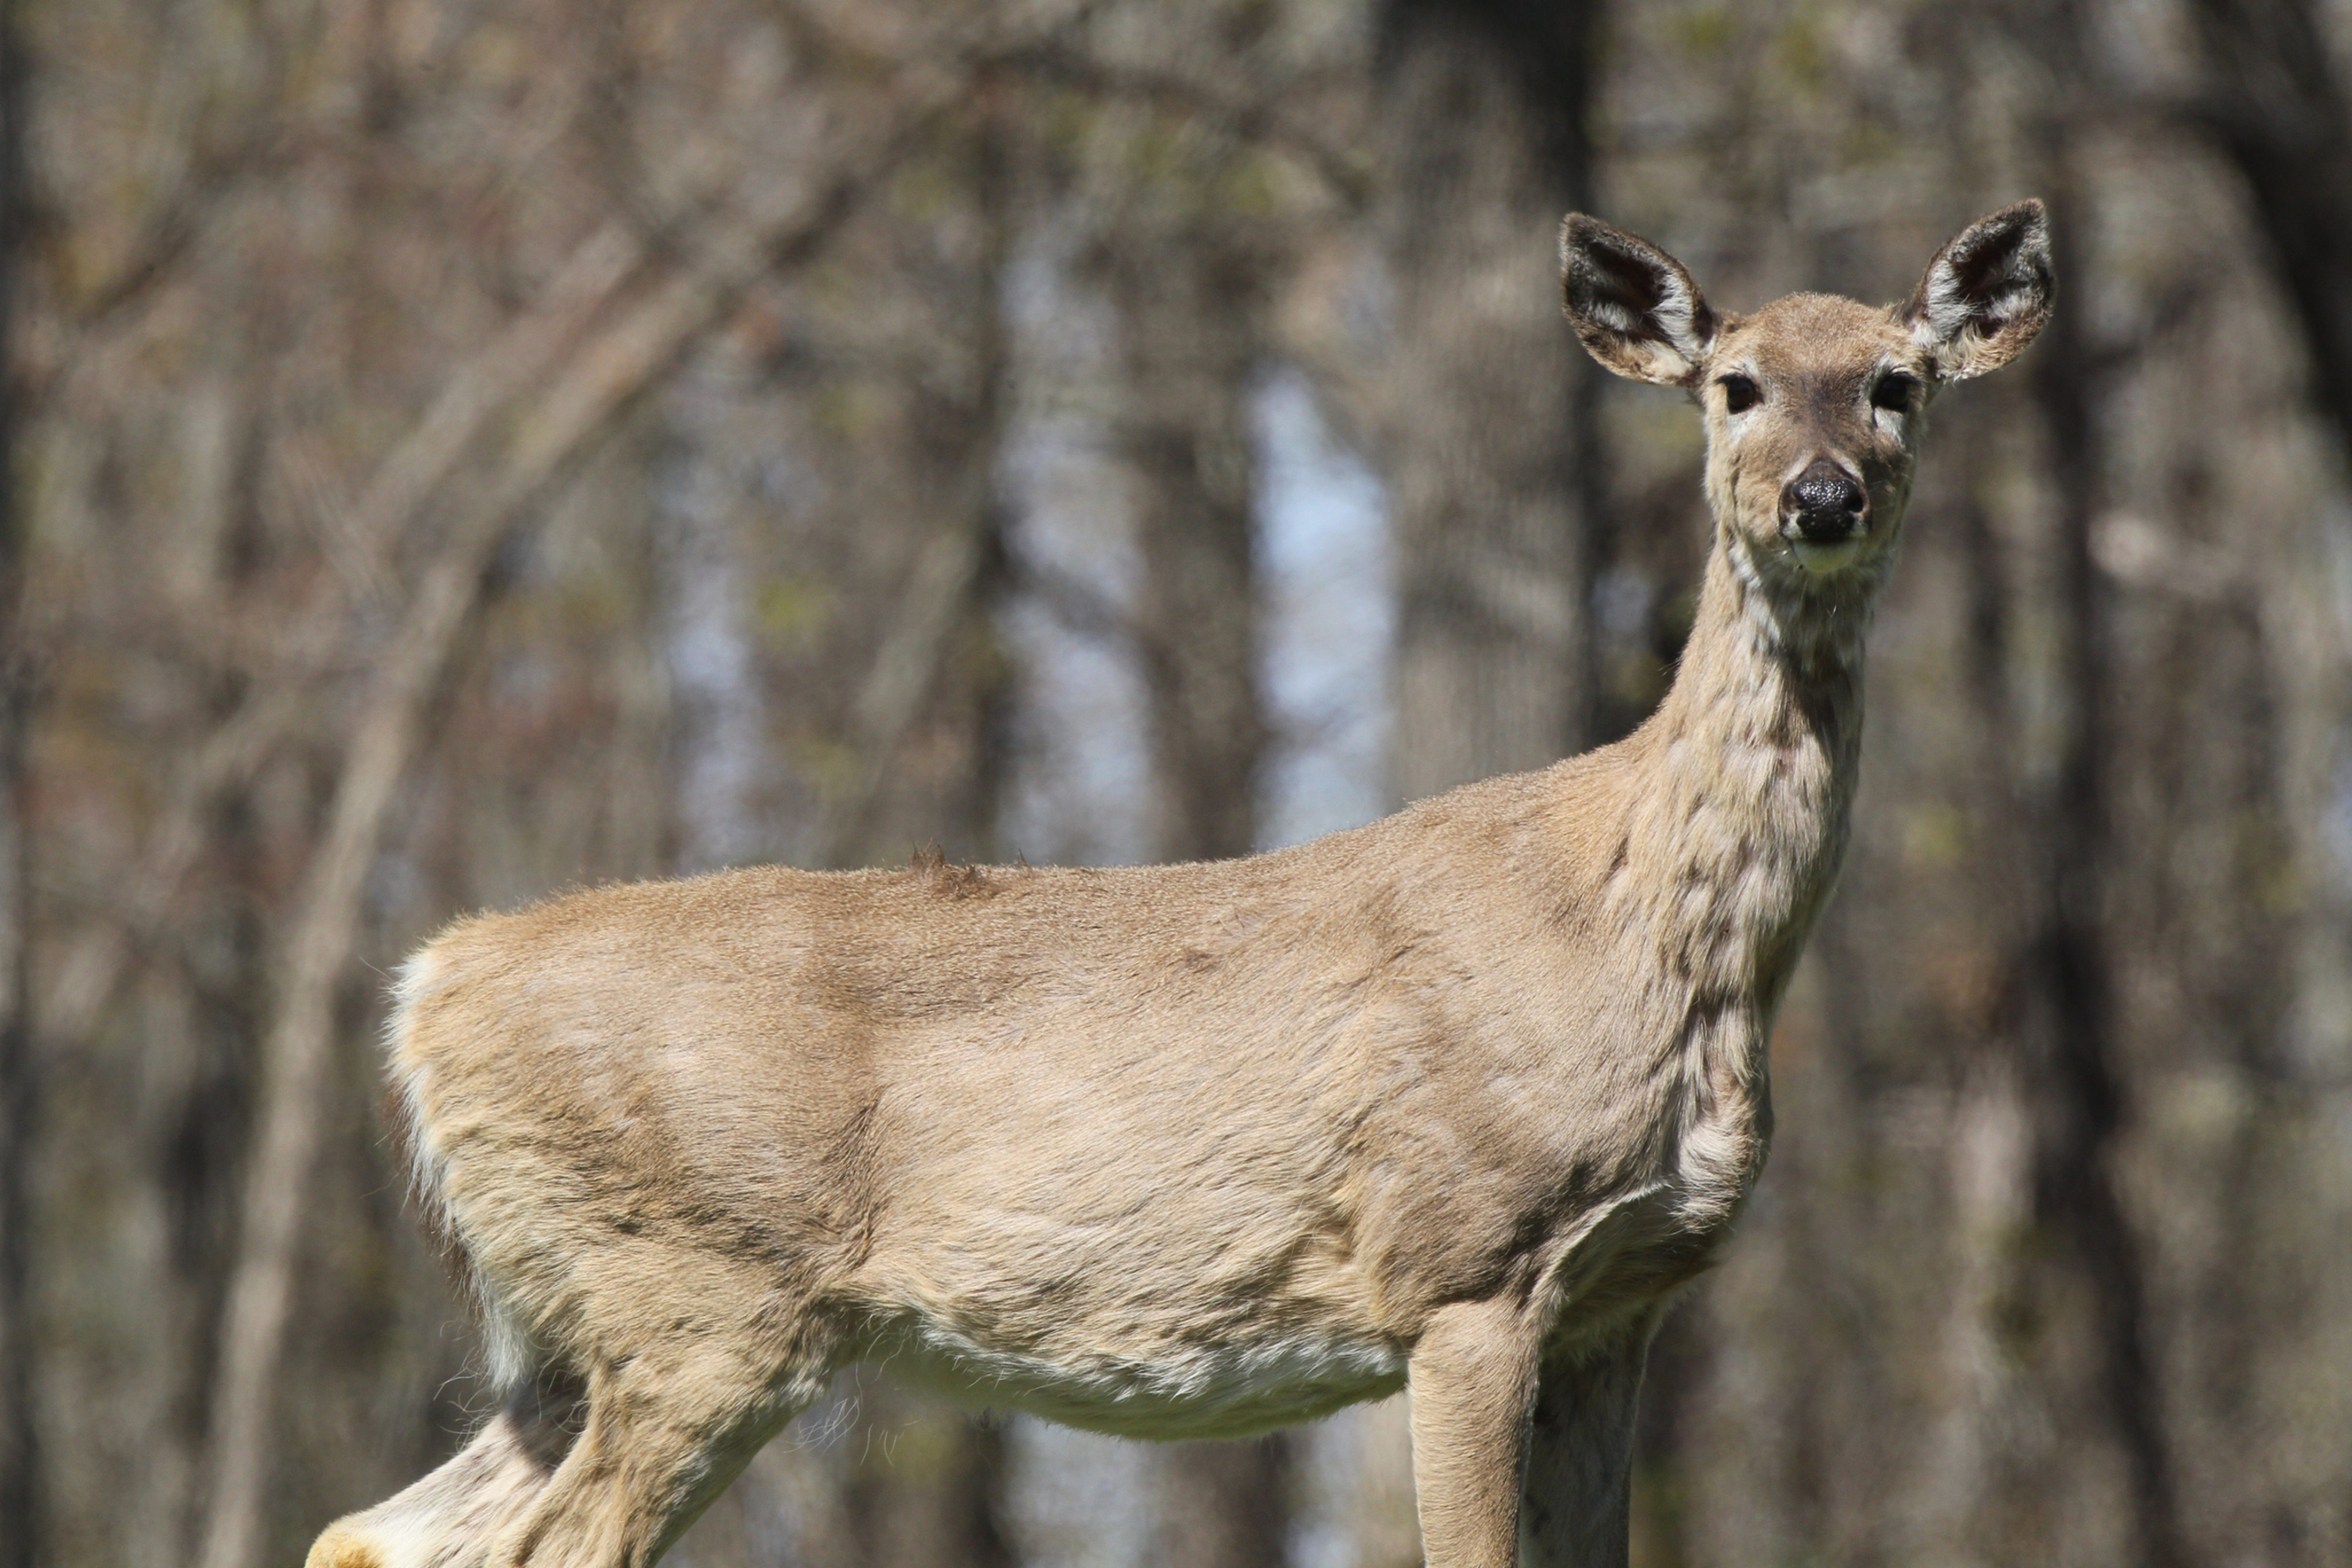 The Smoking Gun: Does CWD Drive Whitetail Population Declines?